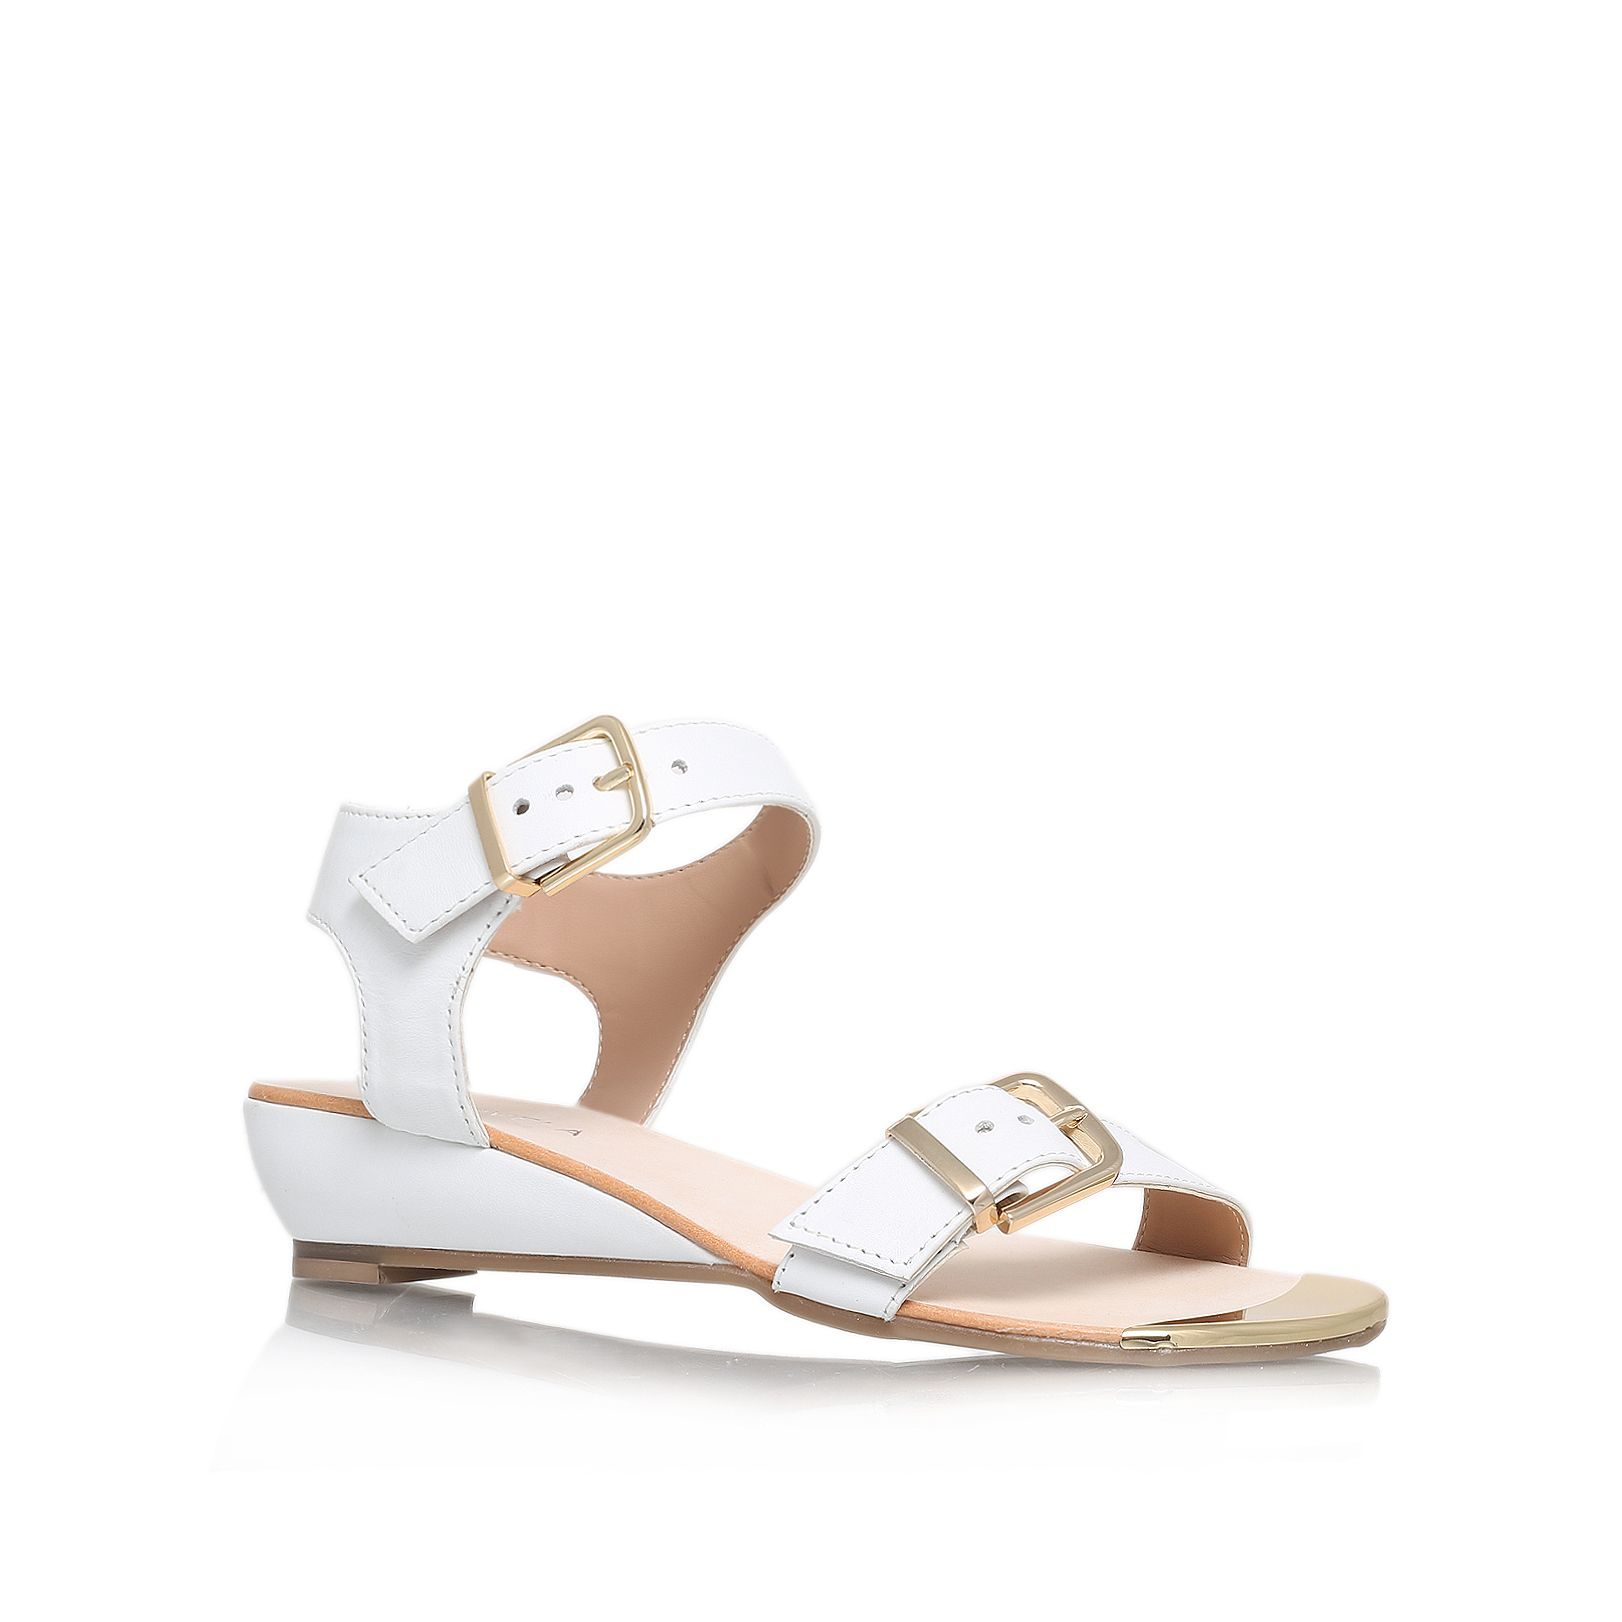 Kap low heel sandals